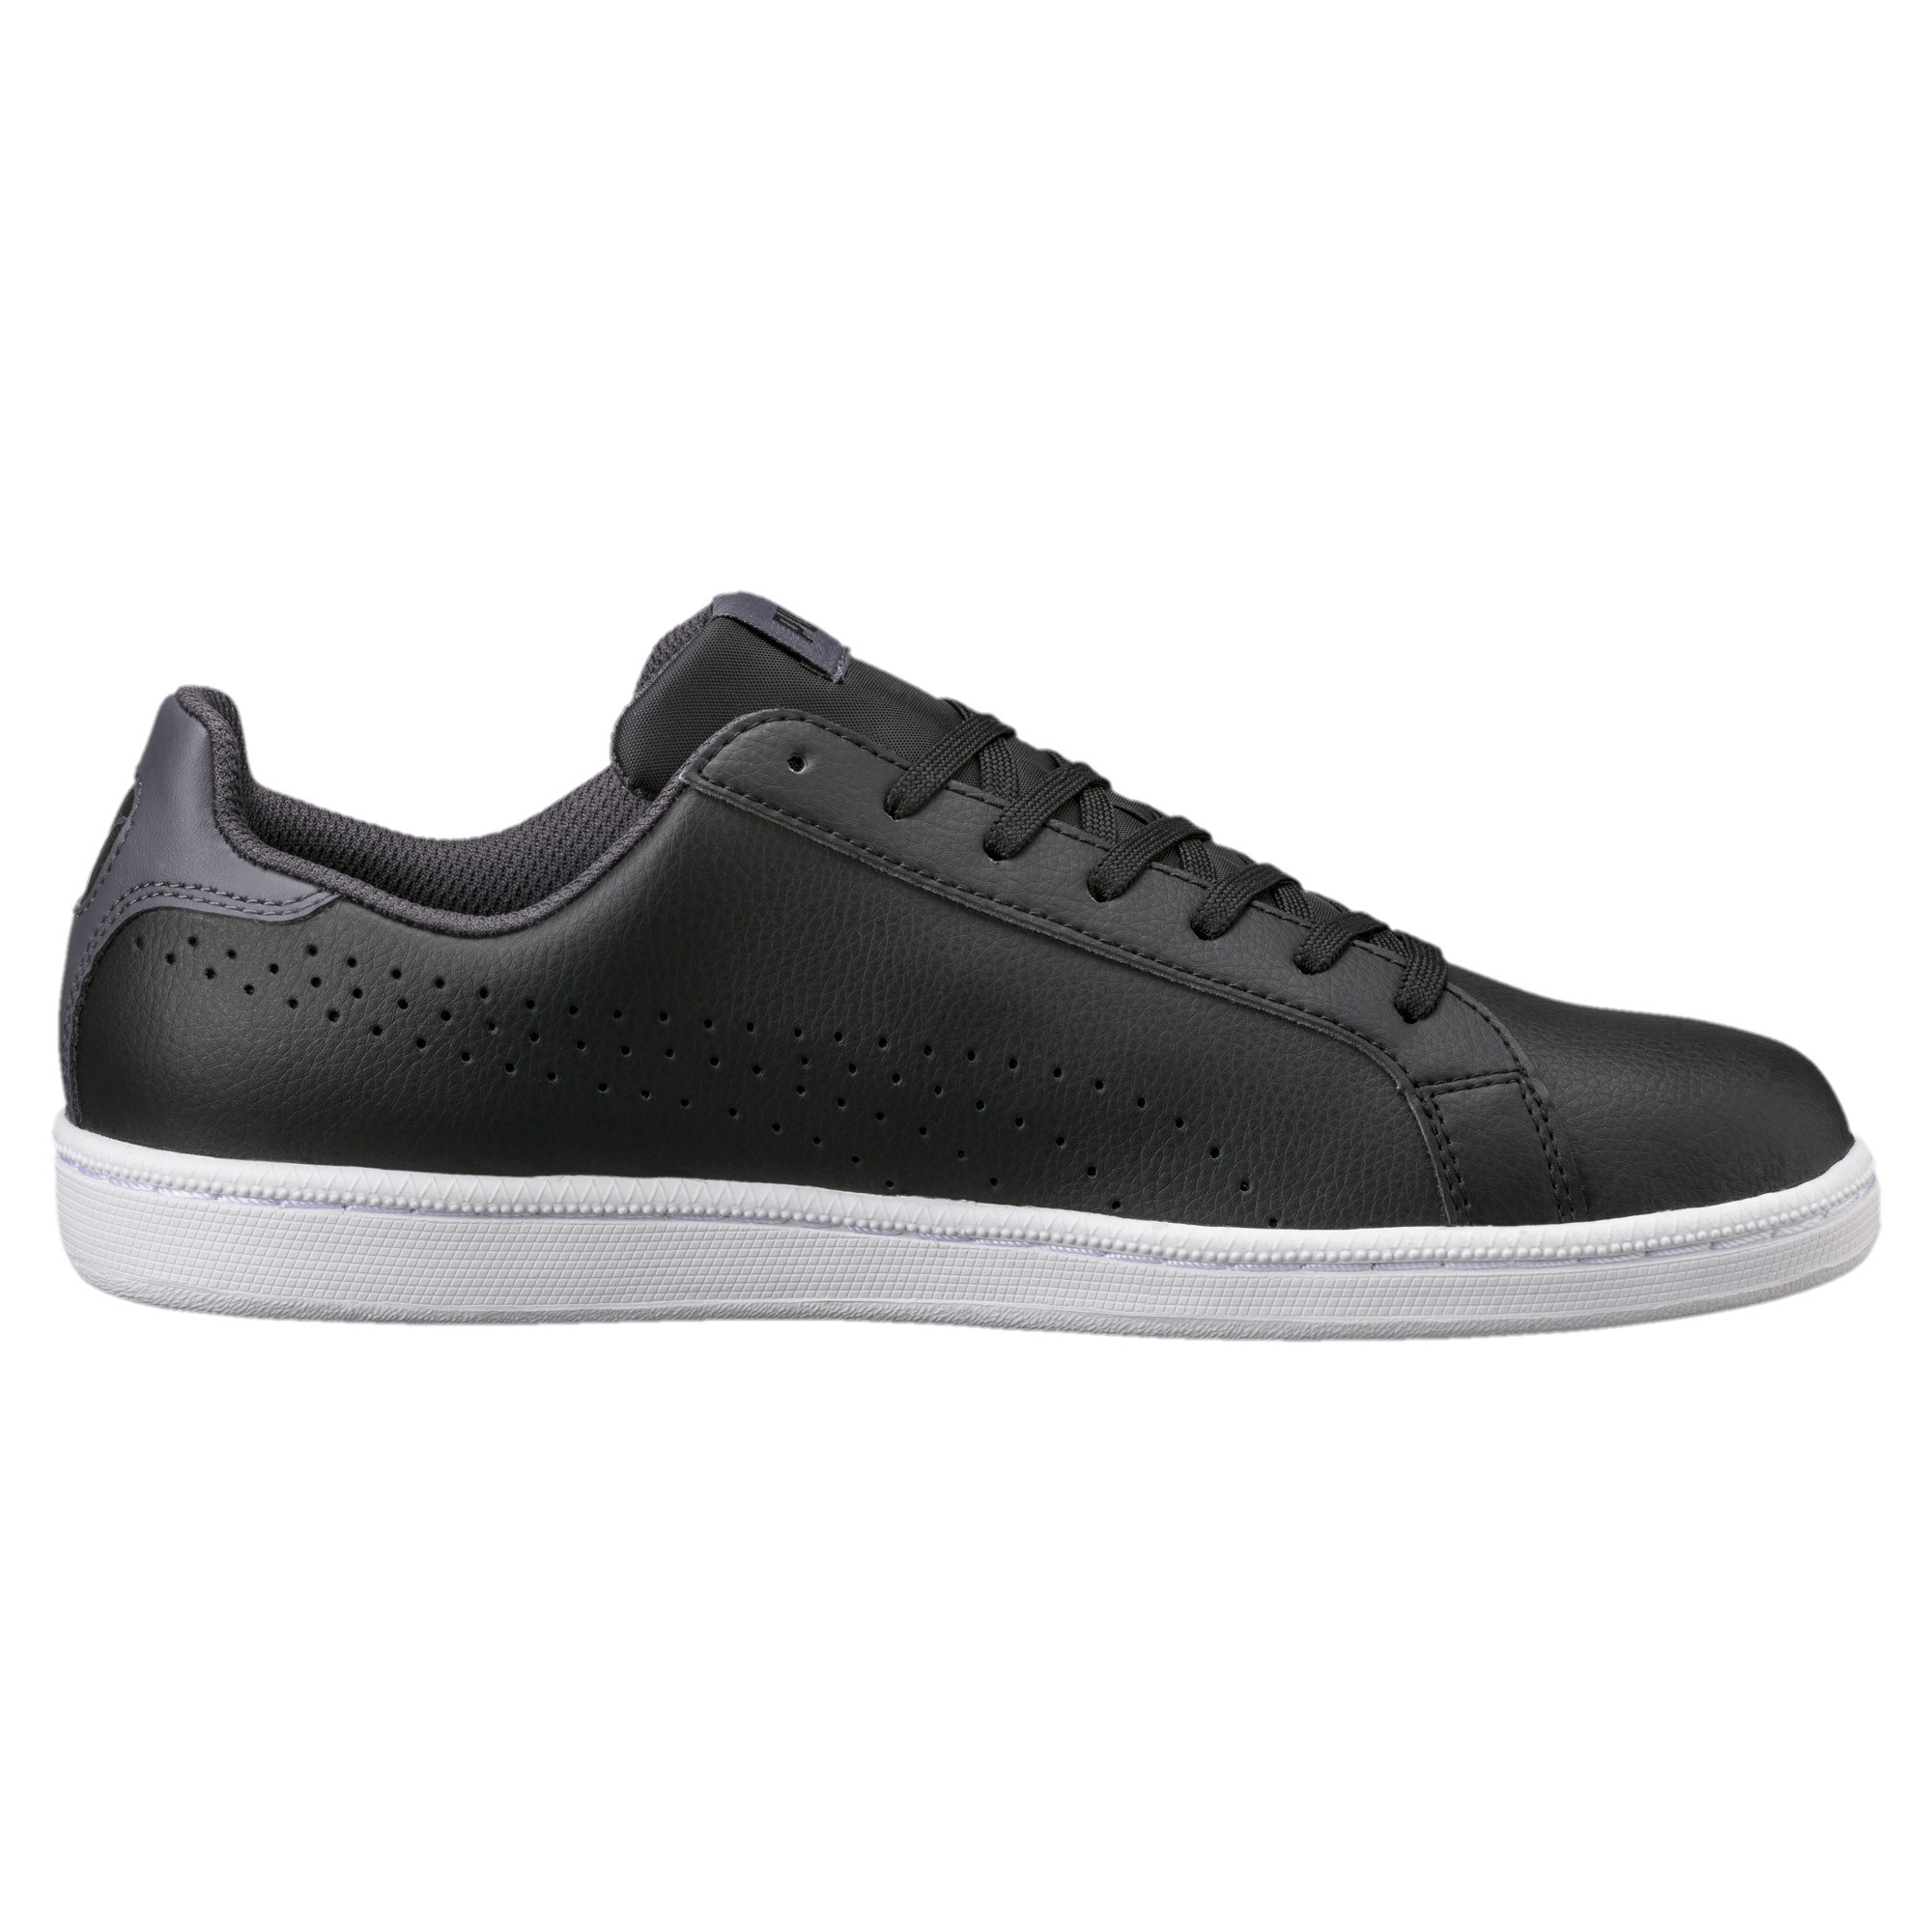 PUMA-PUMA-Smash-Perf-Men-039-s-Sneakers-Men-Shoe-Basics thumbnail 10